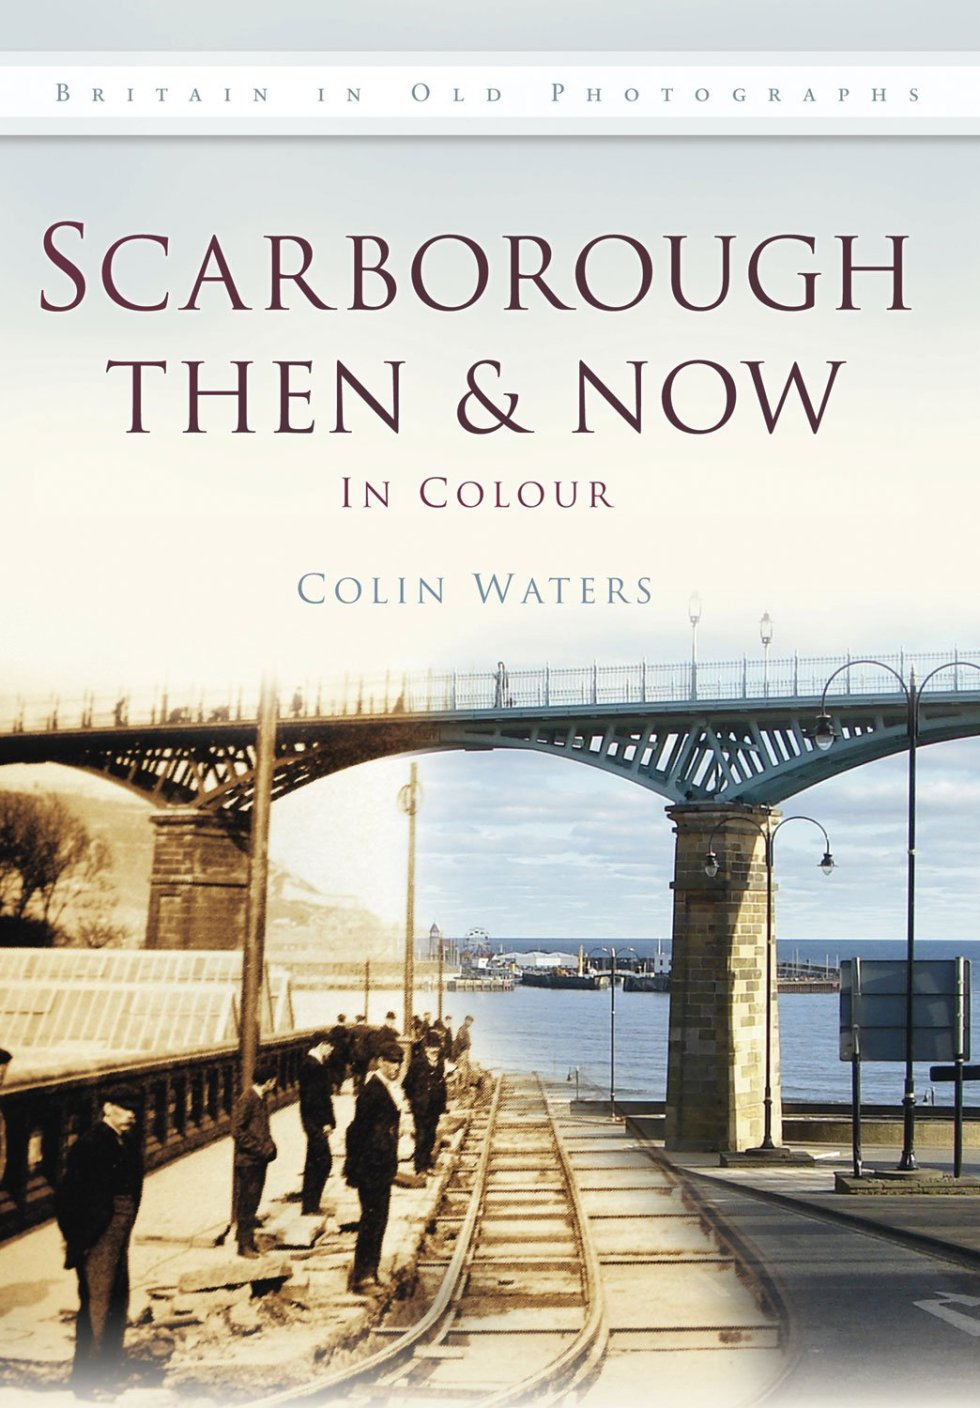 Picture of the book Scarborough Then and Now by Colin Waters